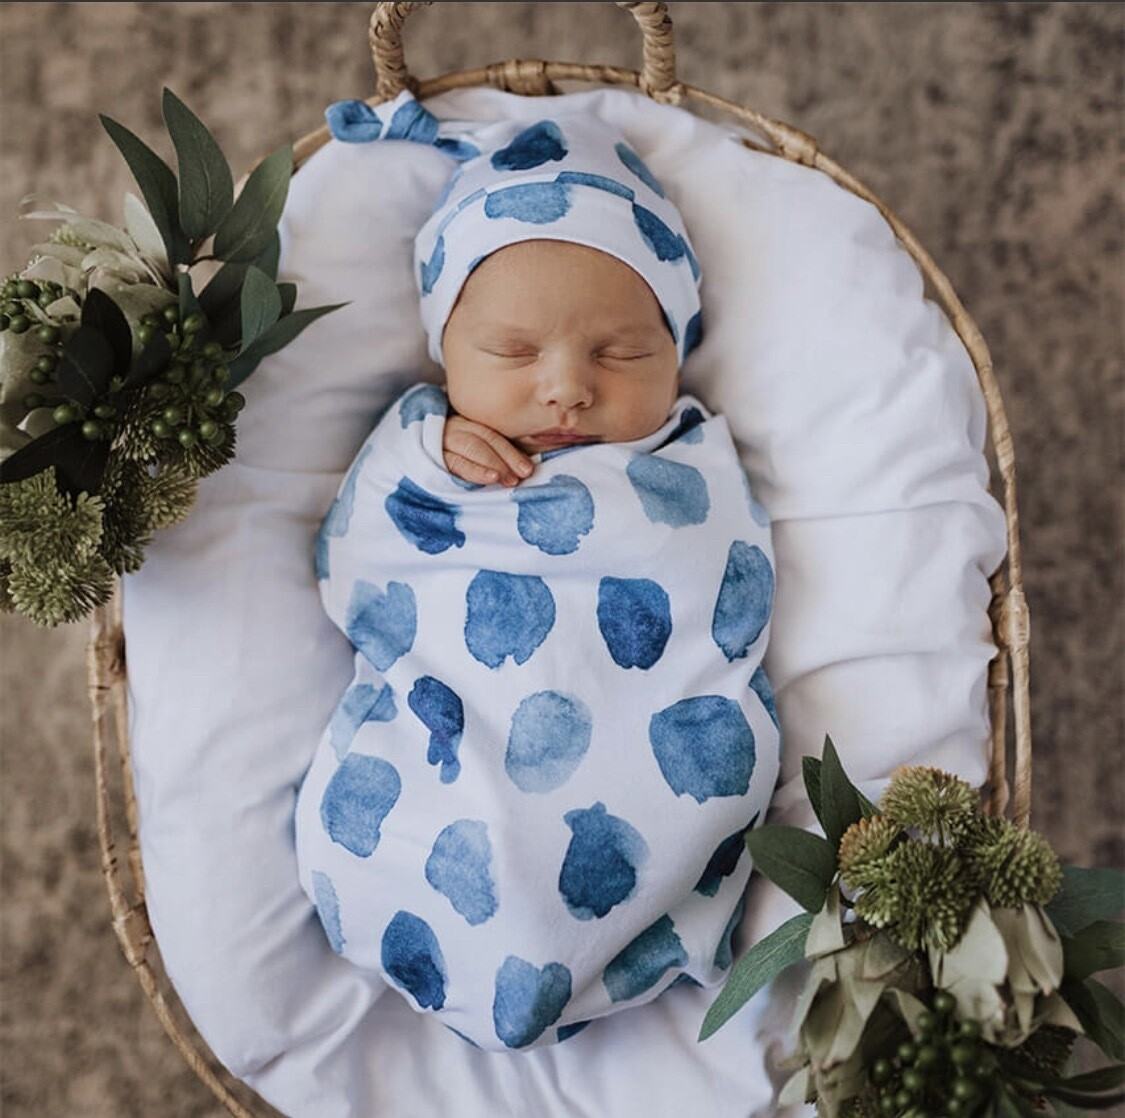 Ocean Skies - Snuggle Swaddle Sack & Beanie Set